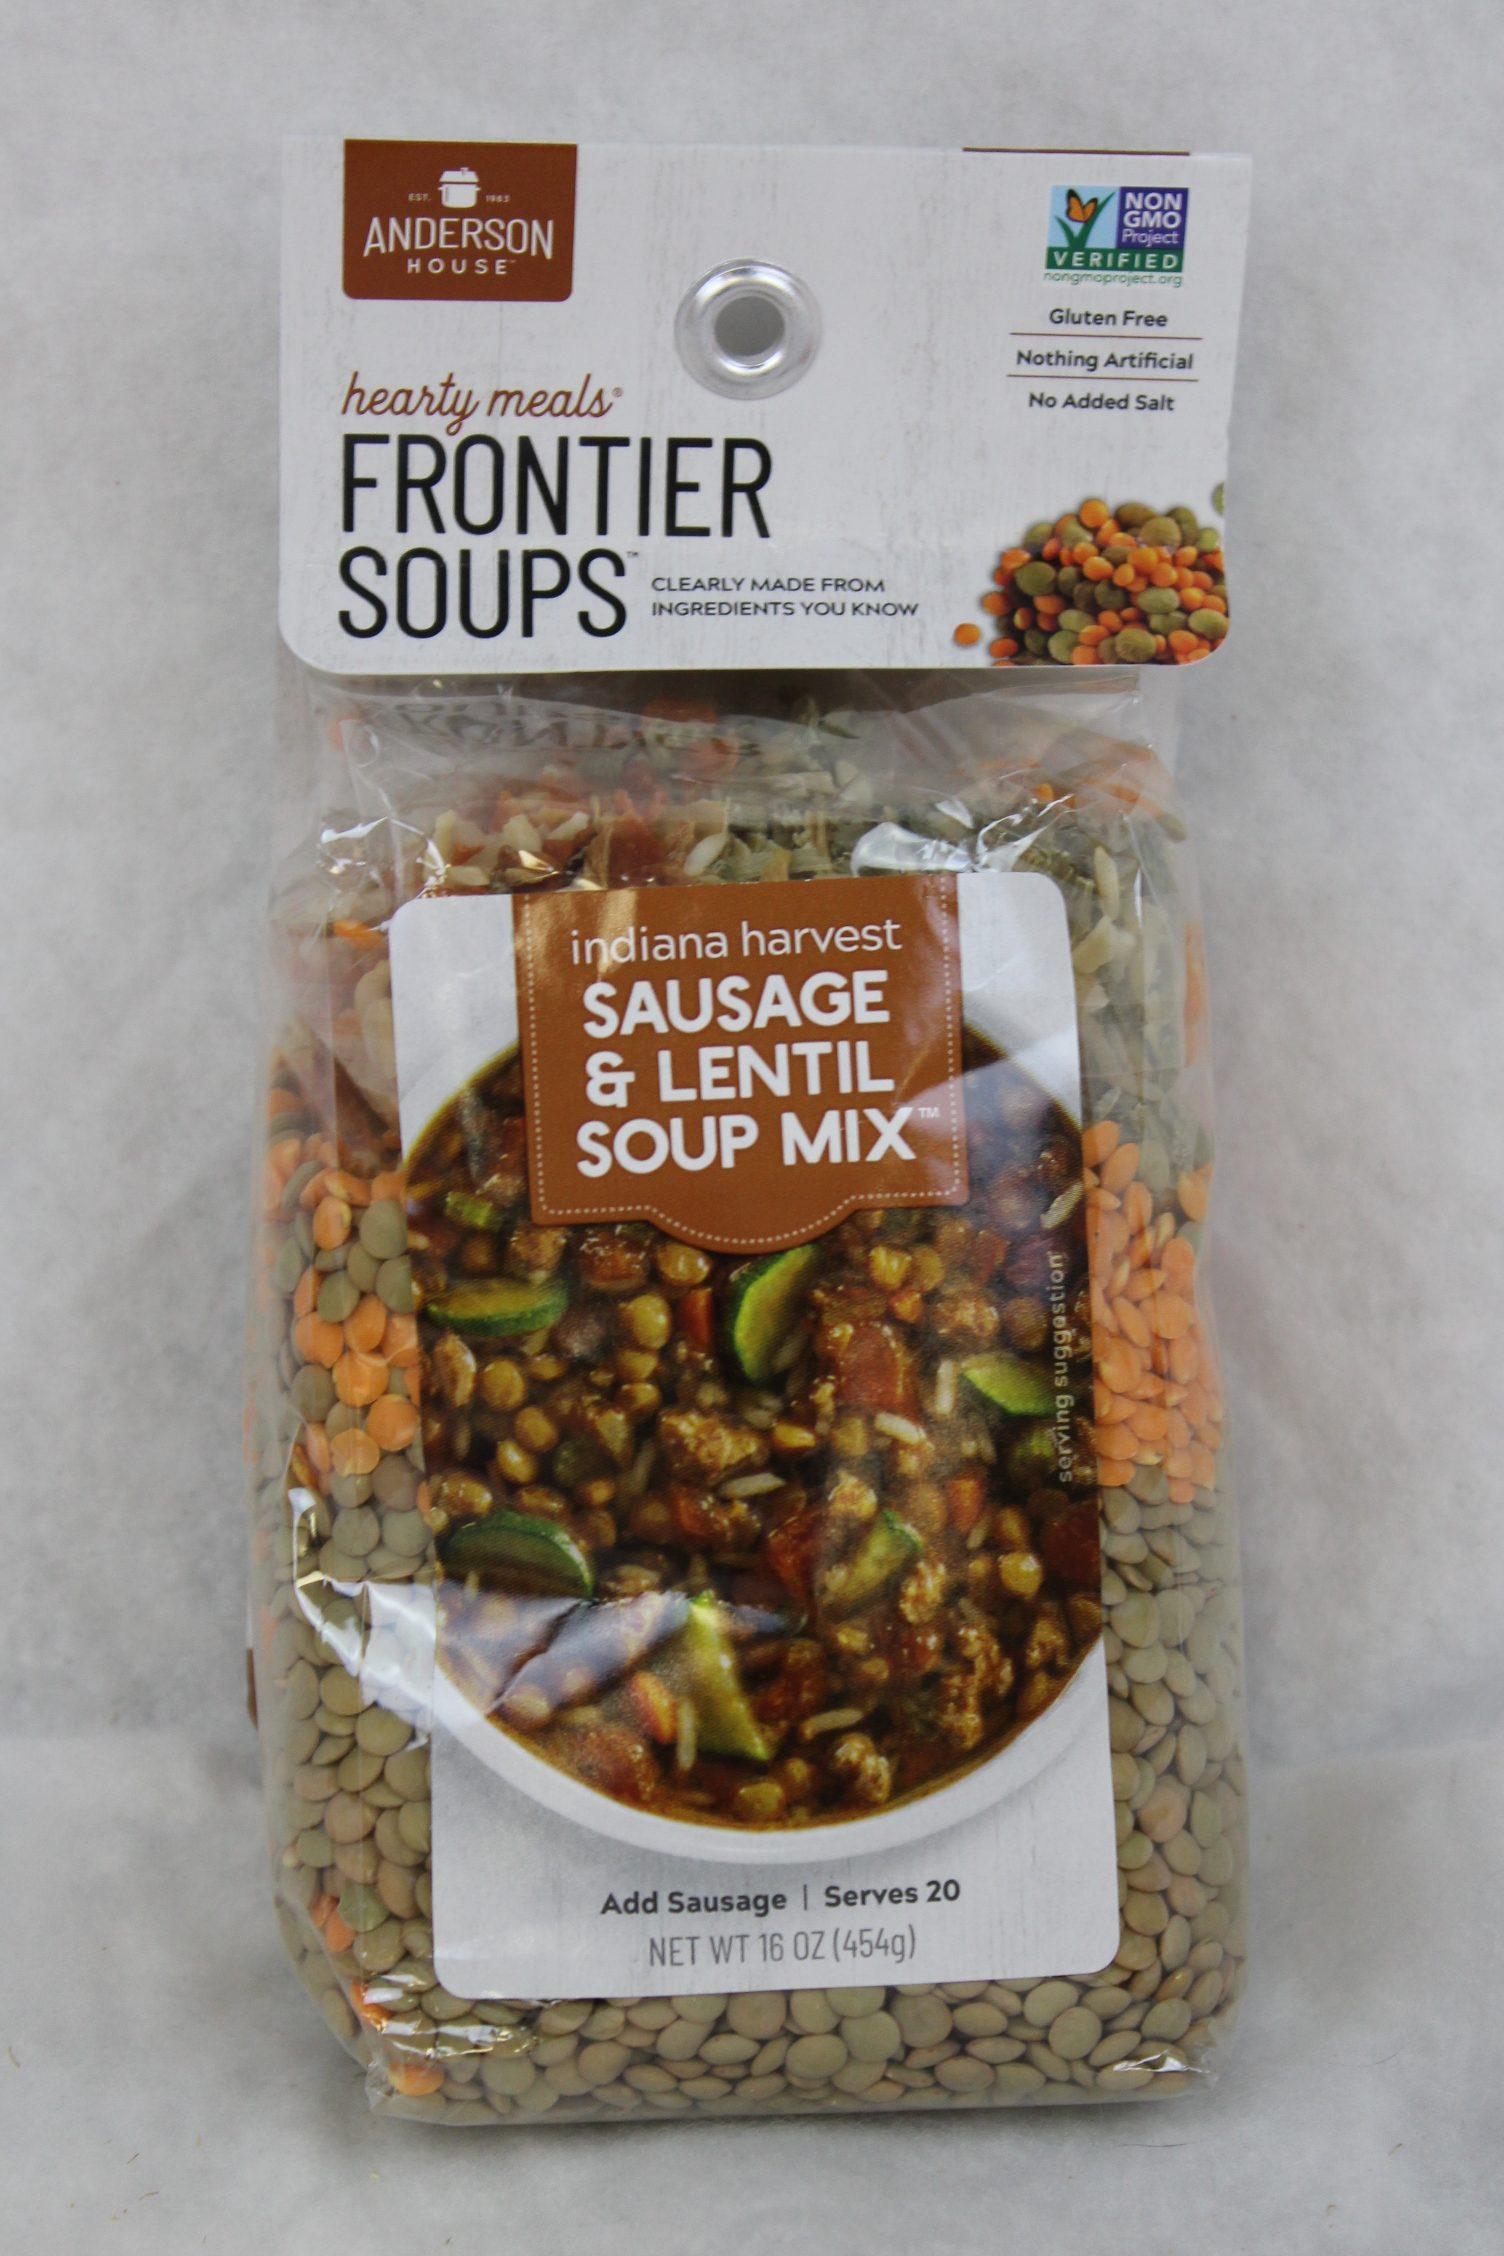 sausage lentil soup mix product image